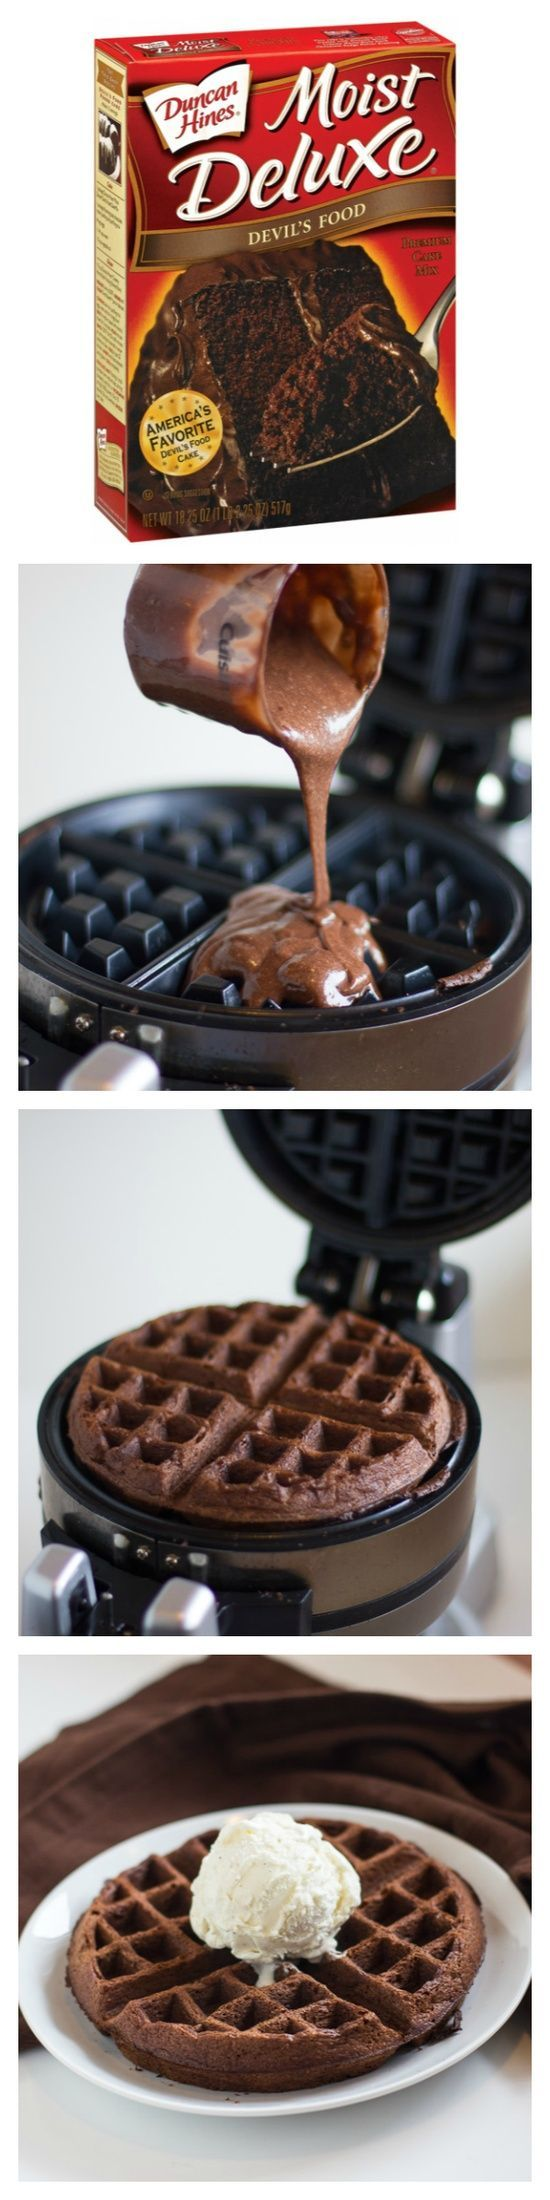 Cake Mix + Waffle Iron = Best Food Hack Ever.